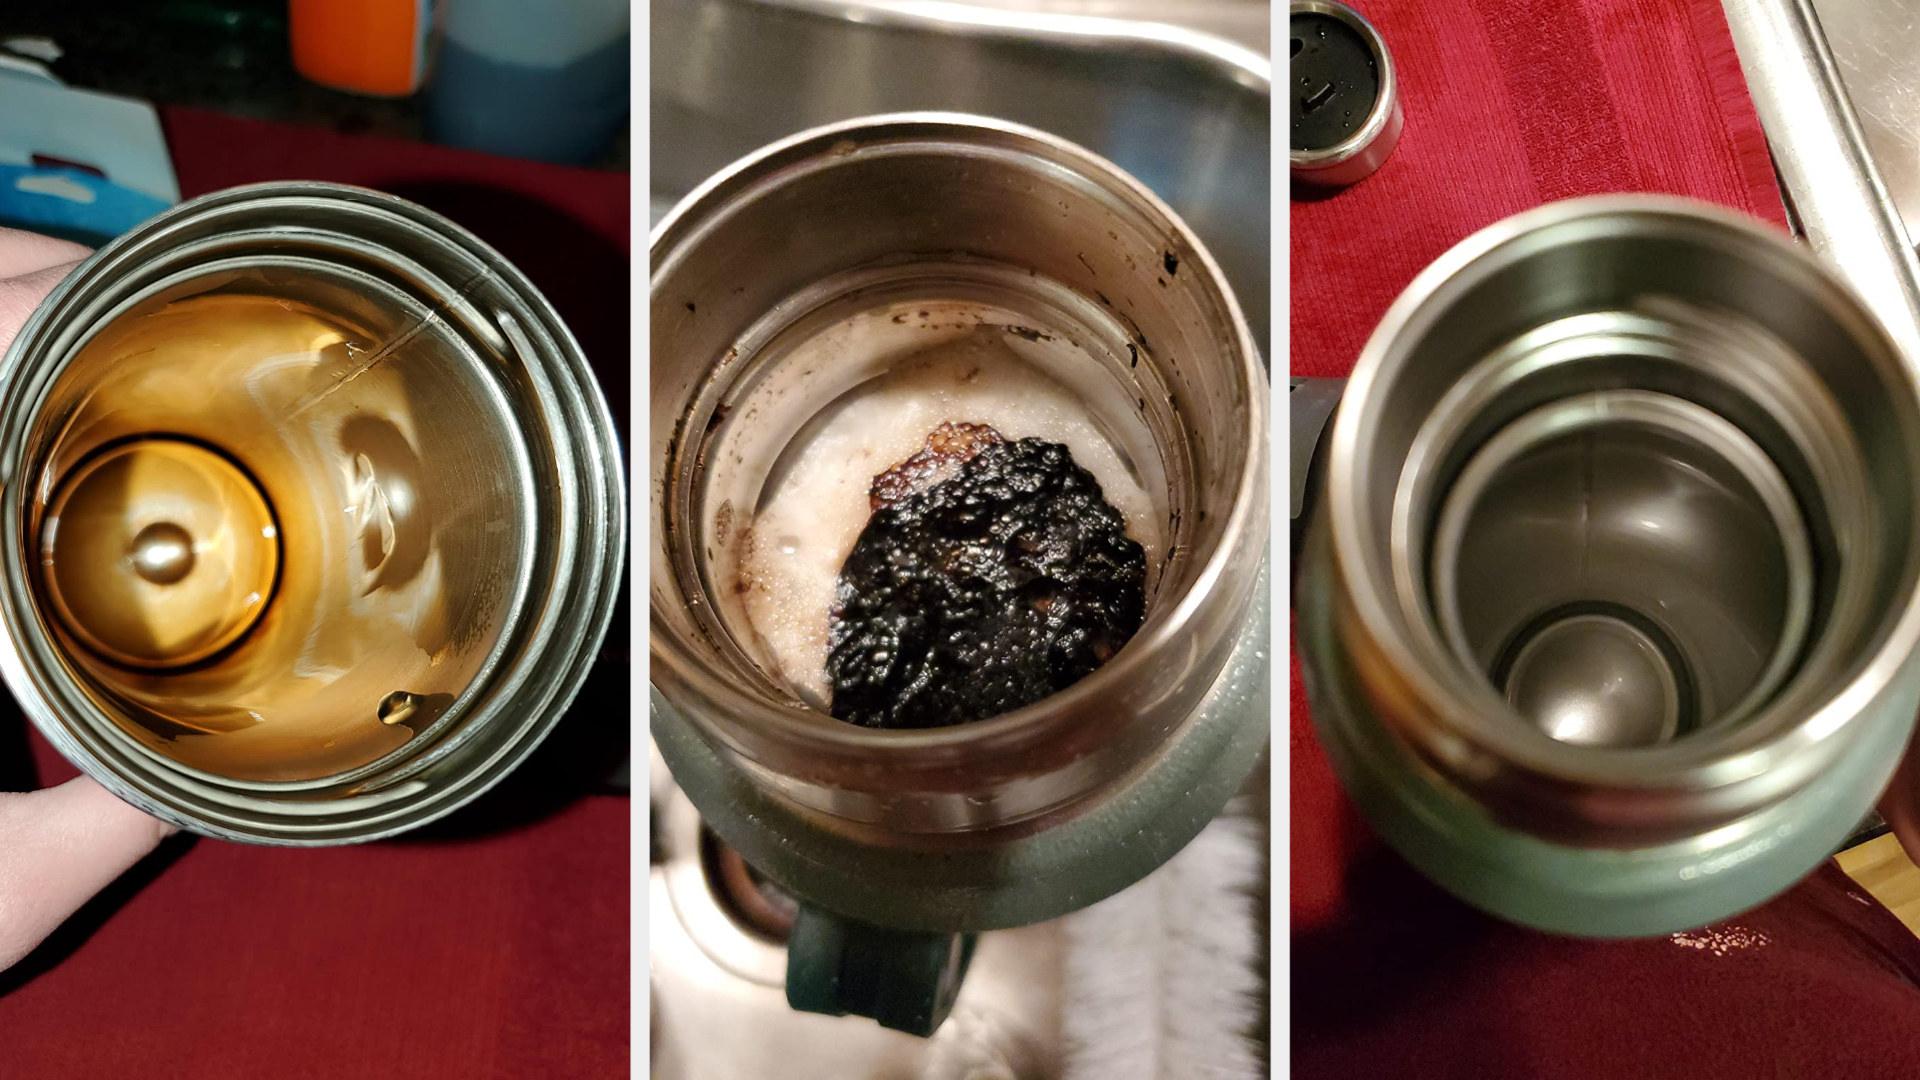 A before, during, and after photo of a metal water canister rusted, bubbly, and then clean after using the tablet